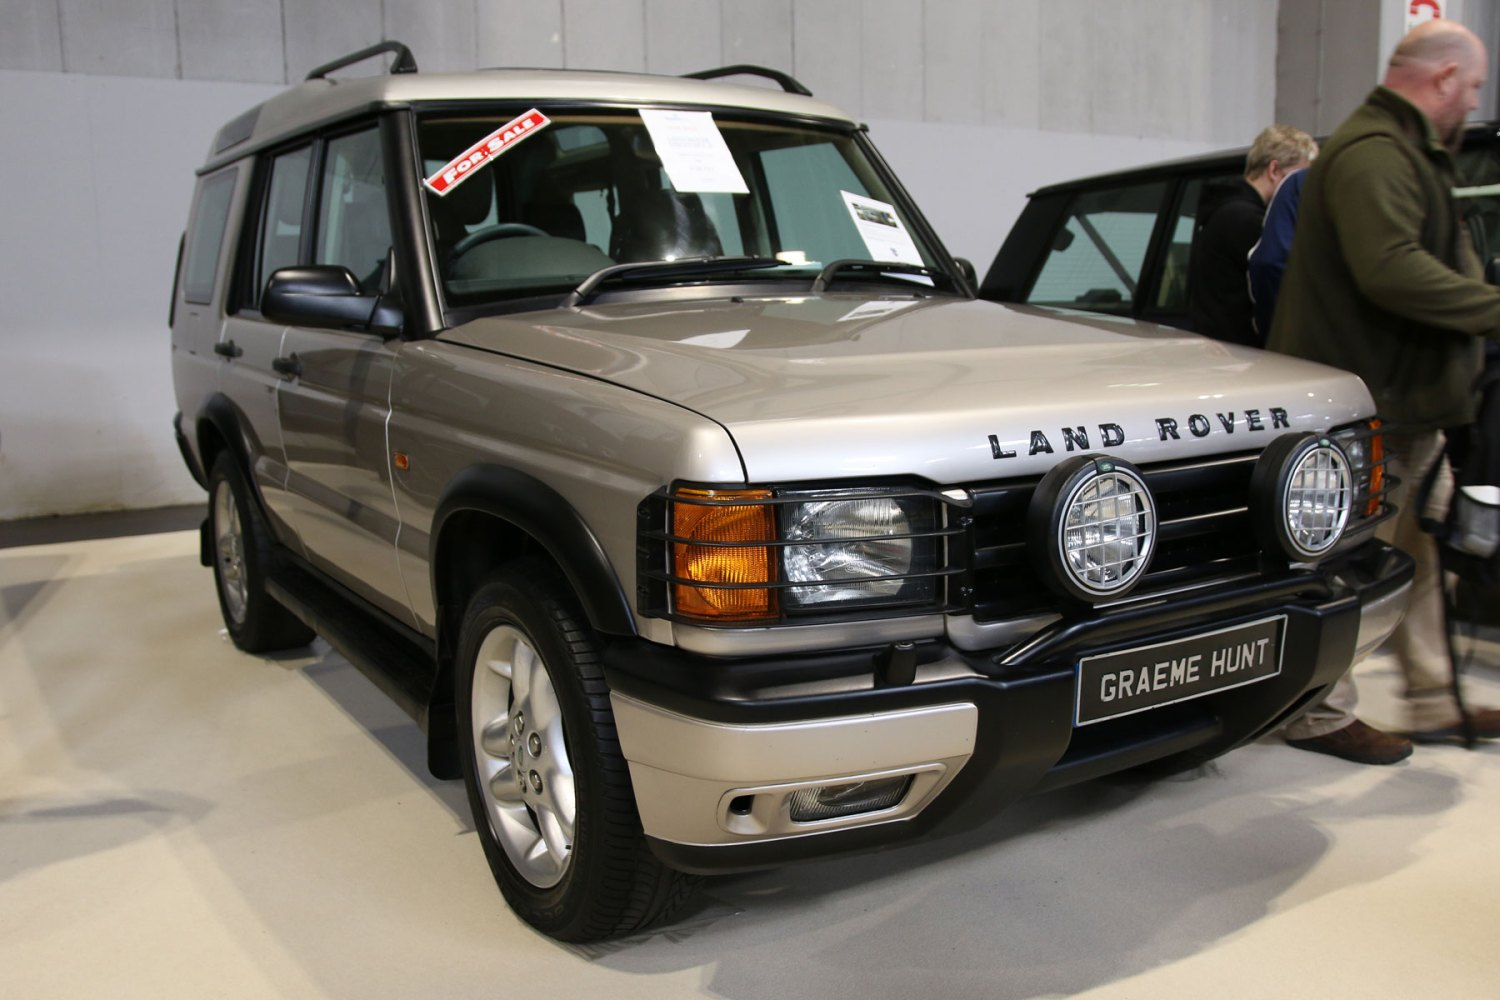 Land Rover Discovery: £18,750